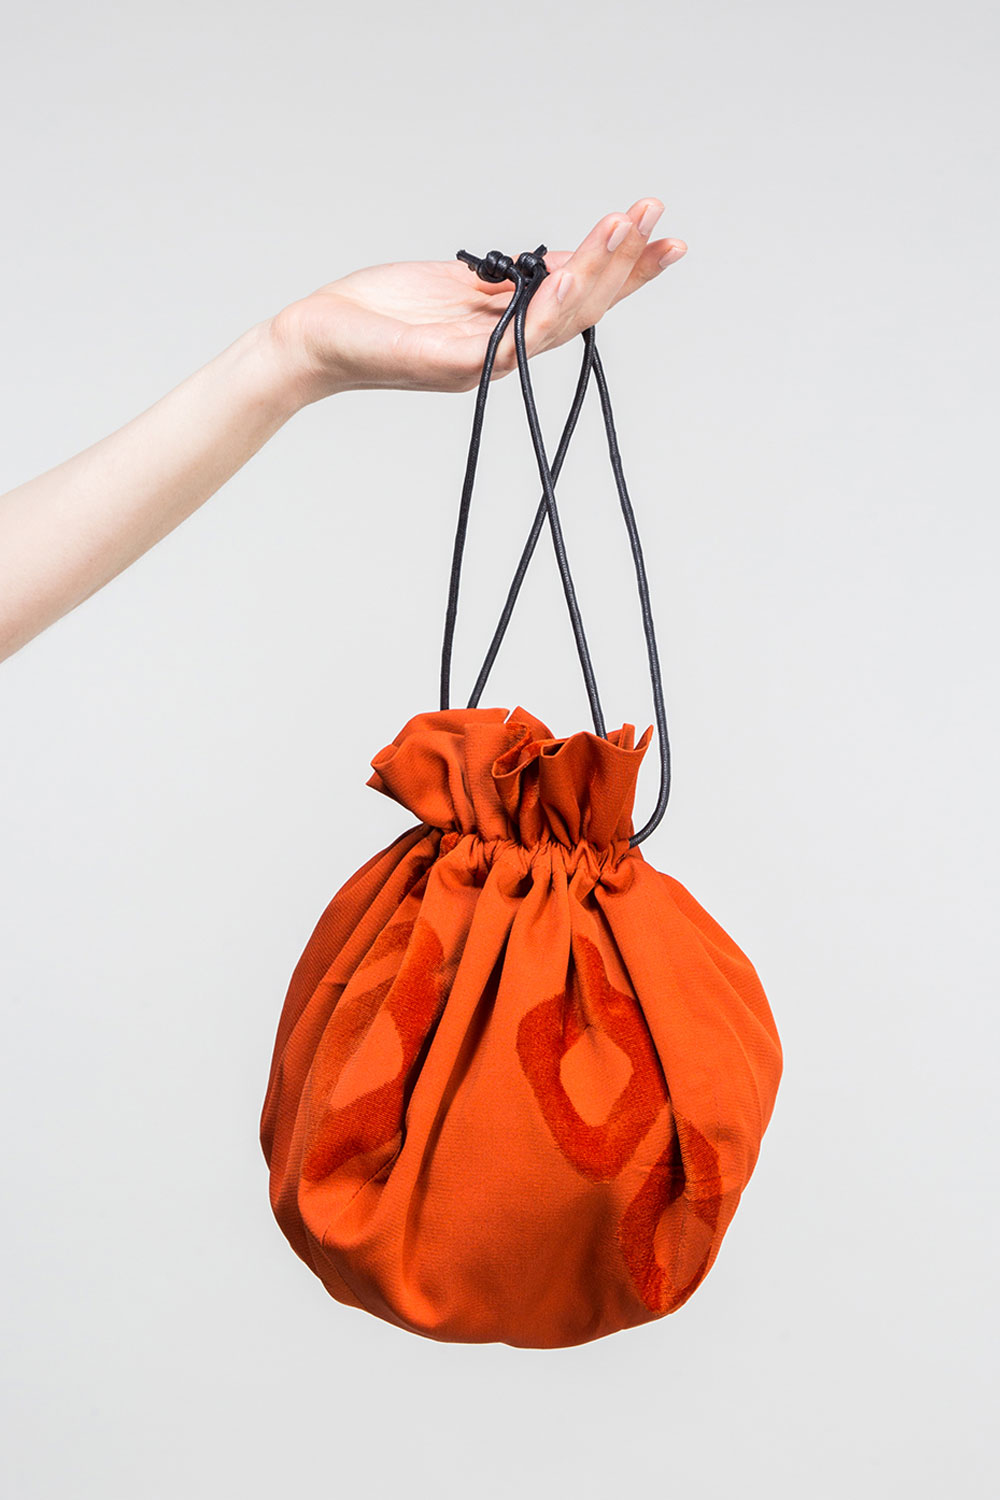 Marble Bag in Vintage Japanese Persimmon Silk with Velvet Geometric Shapes  $350